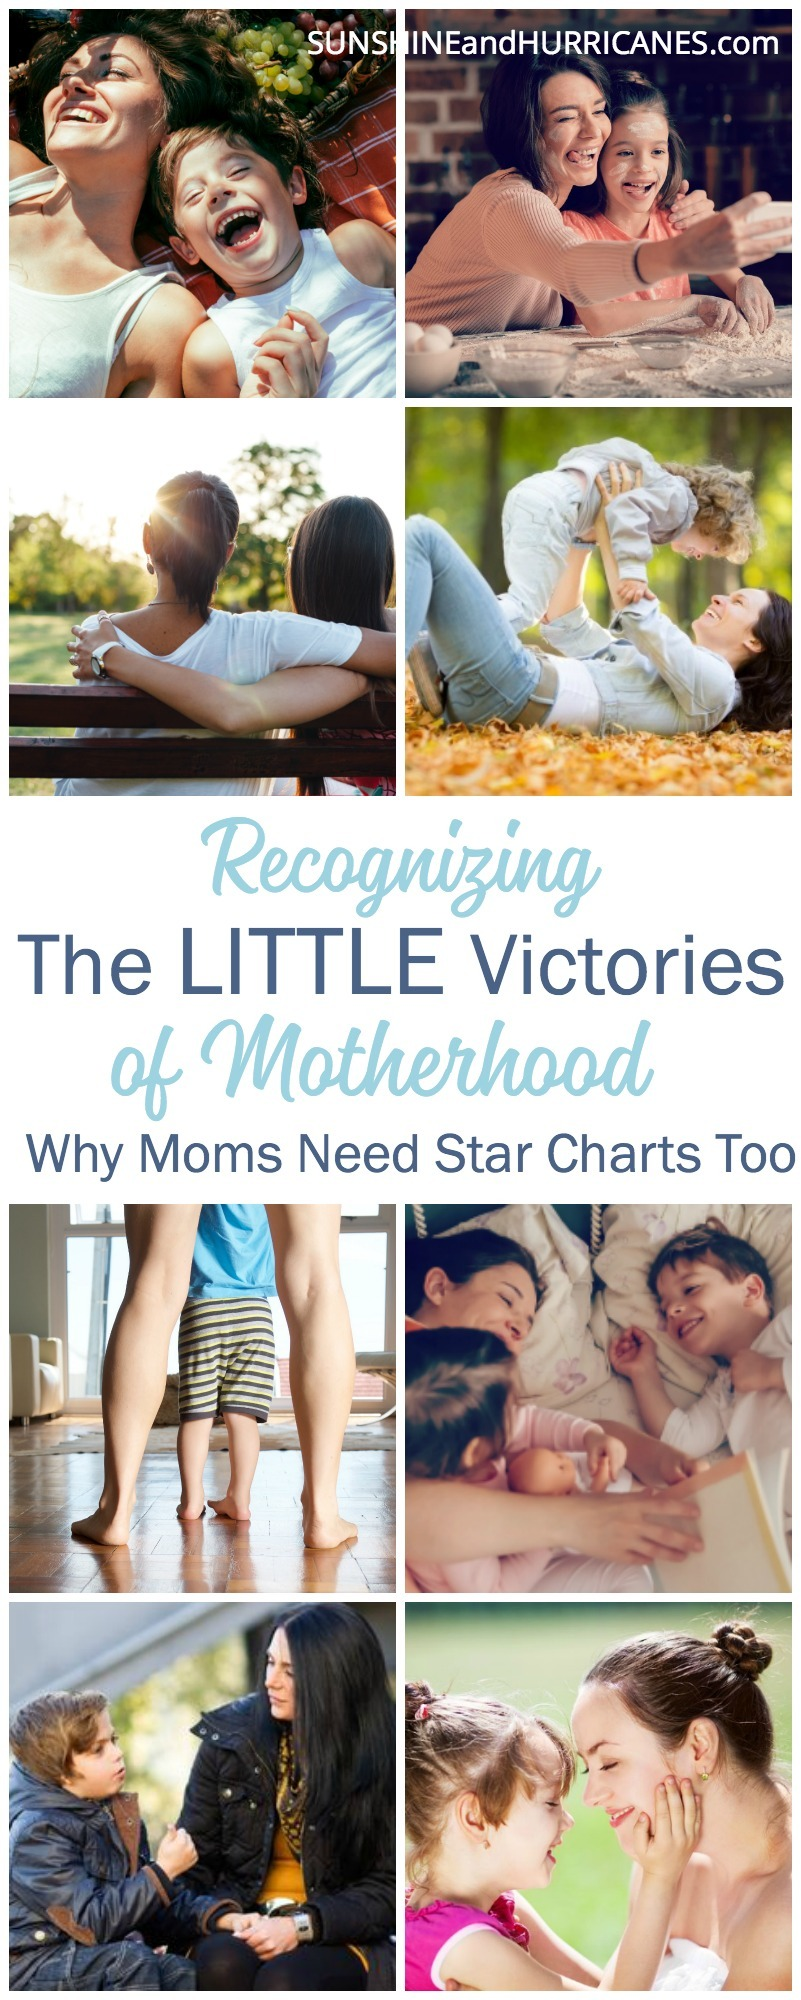 Have you earned a gold star today? I bet you've earned more than you realize. This is why we need to start recognizing the little victories of motherhood more often.